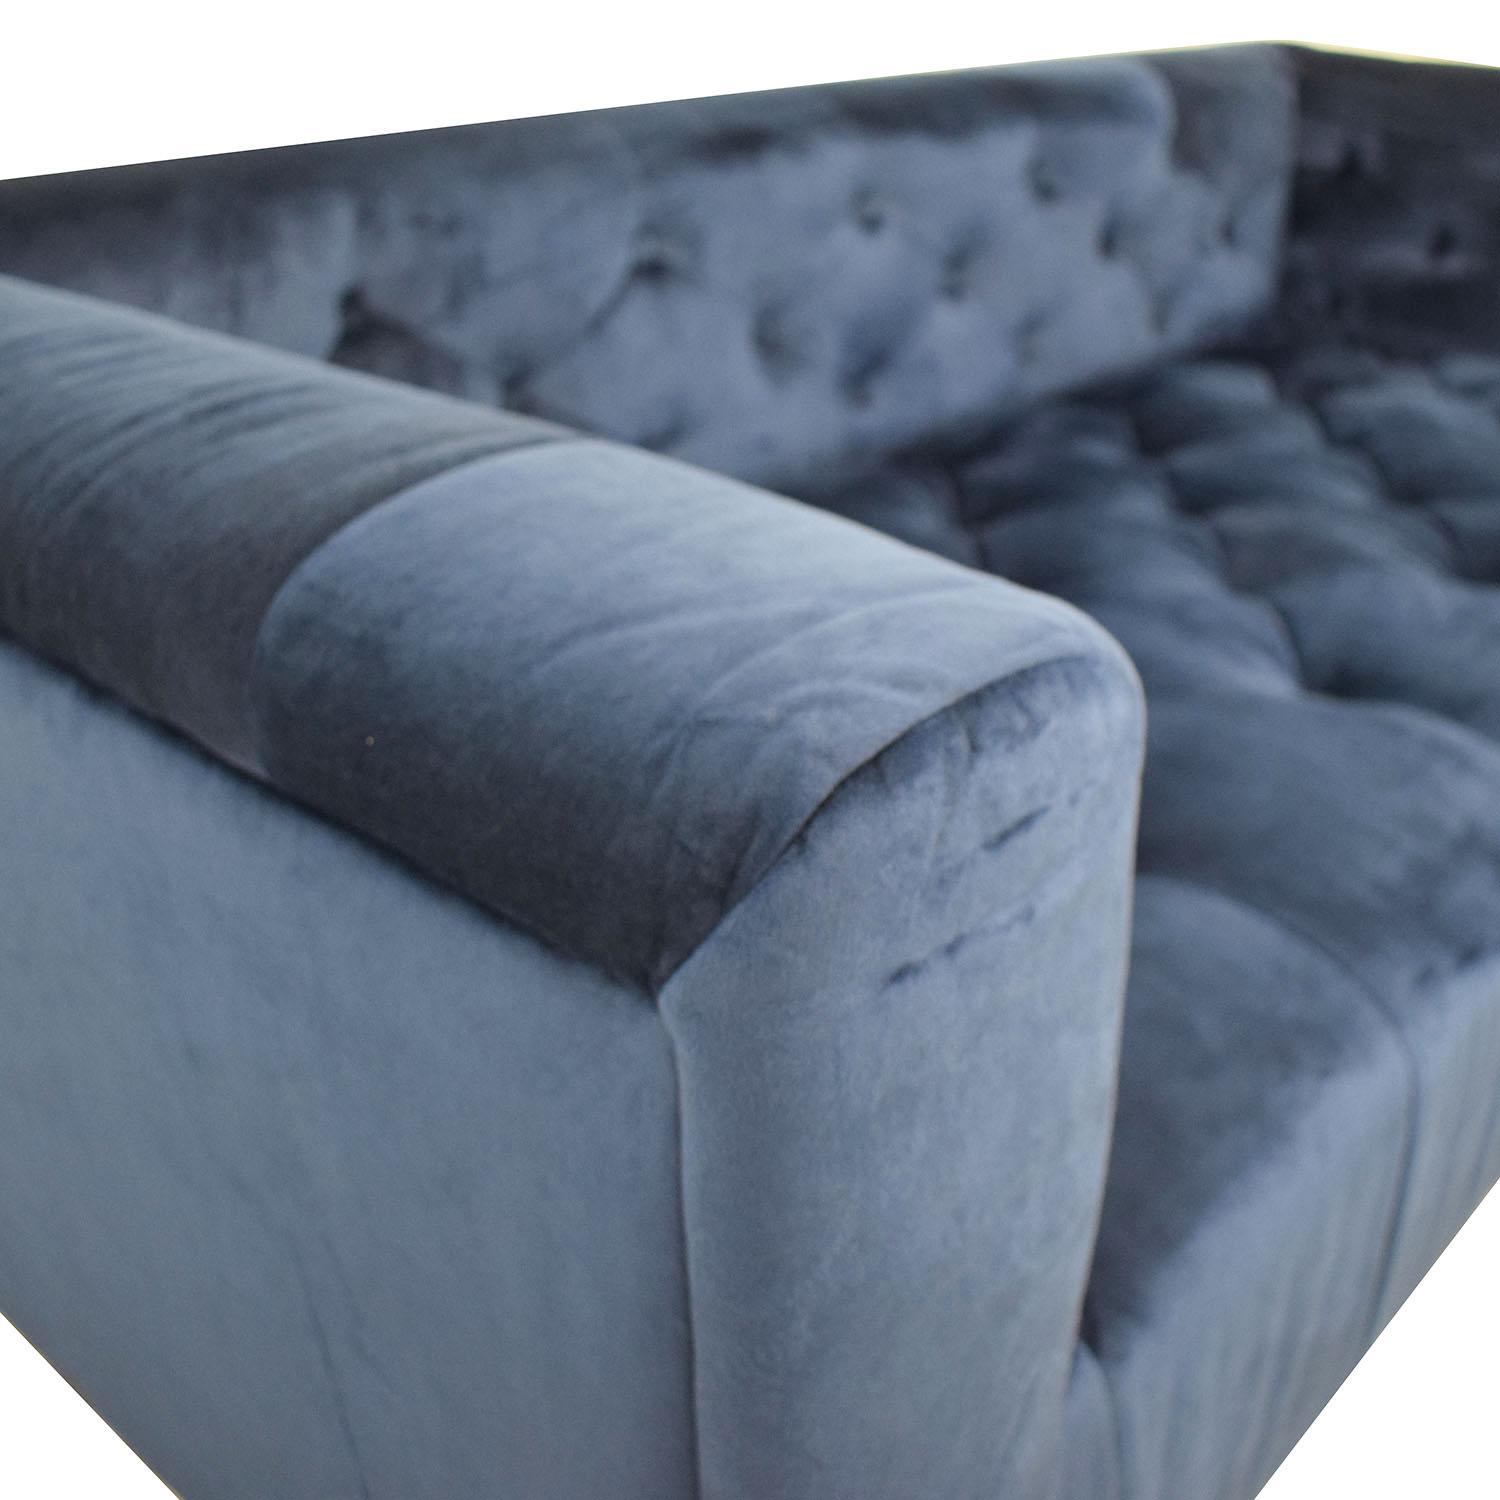 Interior Define Ms. Chesterfield Velvet Oxford Blue Tufted Sofa nyc